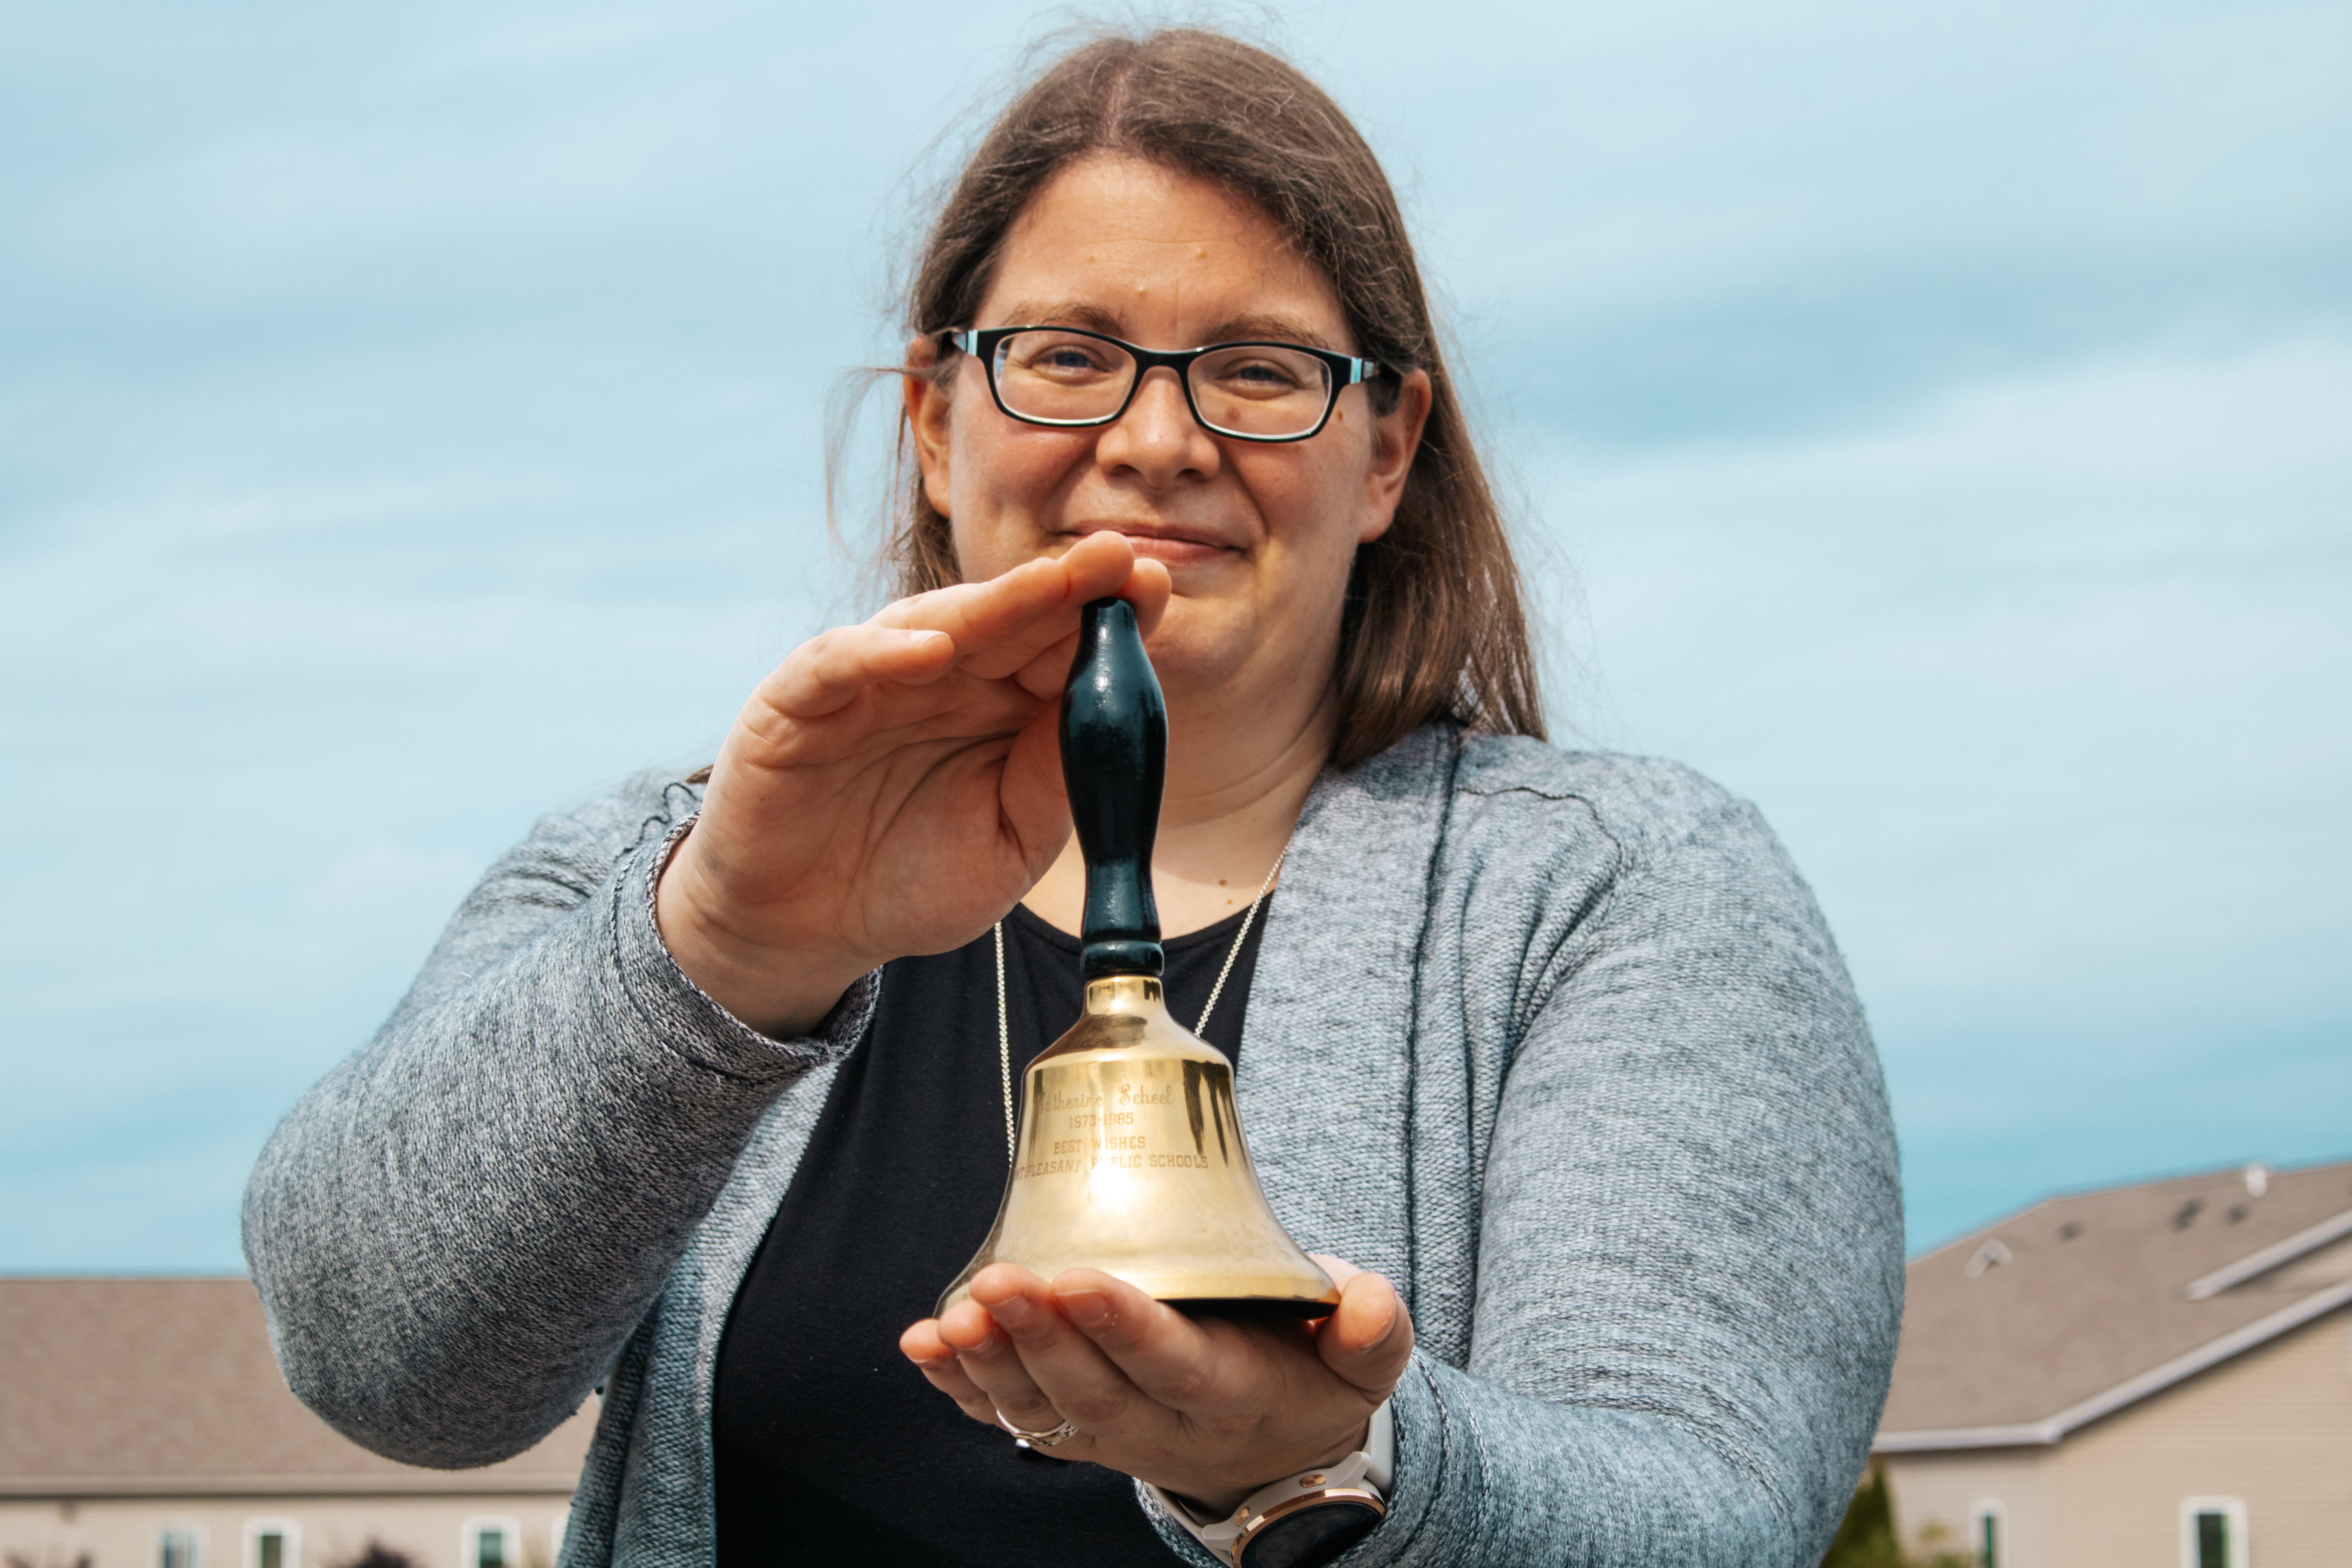 A photo of Concord Academy Boyne teacher, Caitlin Ritter, holding a bell that was given to her grandmother as a gift for her years of service as a teacher.